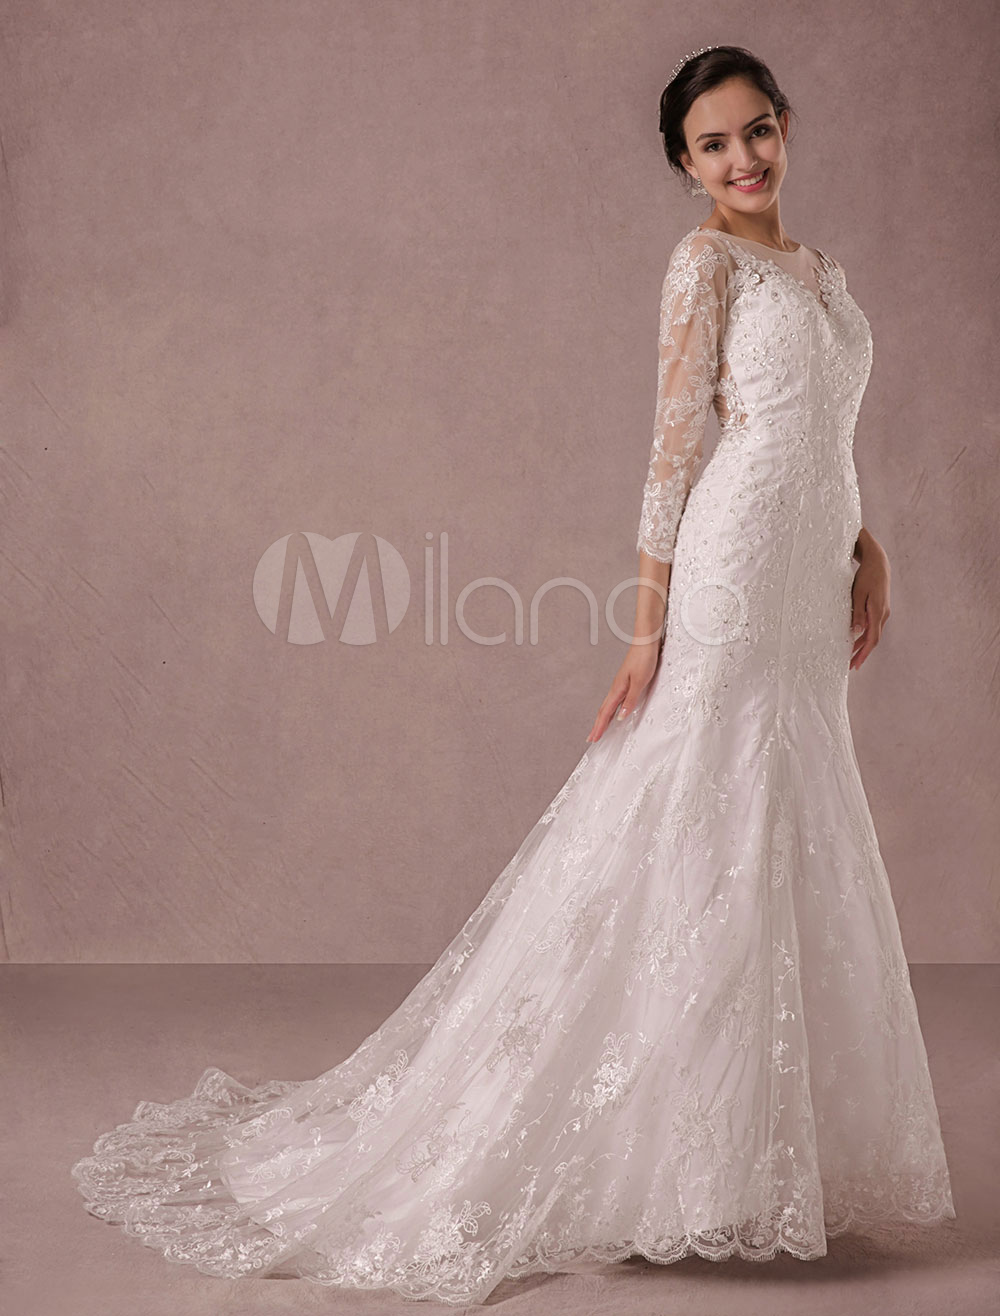 fd08dc9b4a7e Mermaid Wedding Dress Long Sleeves Lace Illusion Back Applique Beading  Court Train Bridal Gown Milanoo - Milanoo.com